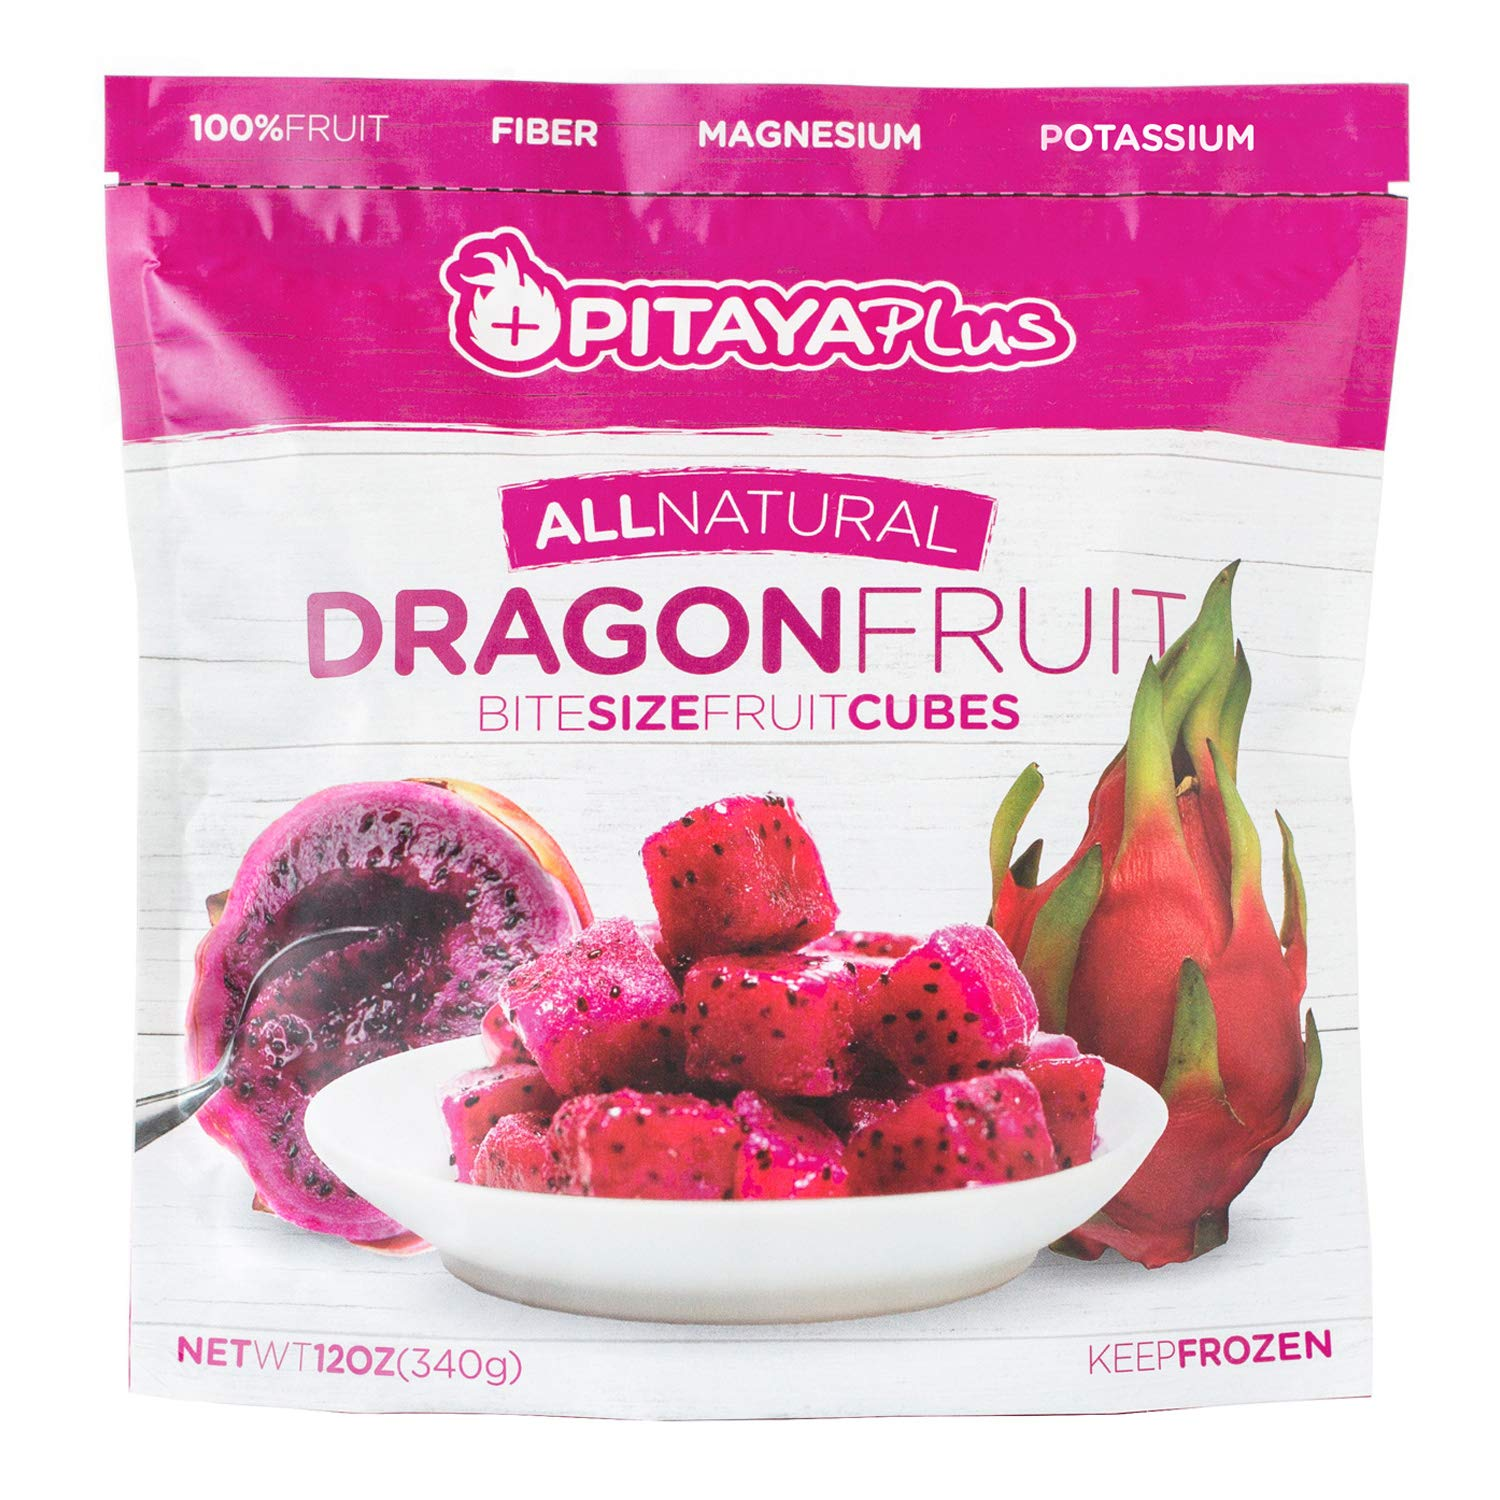 Pitaya Plus Natural Red Dragon Fruit Cubes. Frozen IQF Dragon Fruit Chunks that are a Good Source of Fiber, Magnesium, Potassium, Iron and More. 8 individual 12oz (340g) Packs.